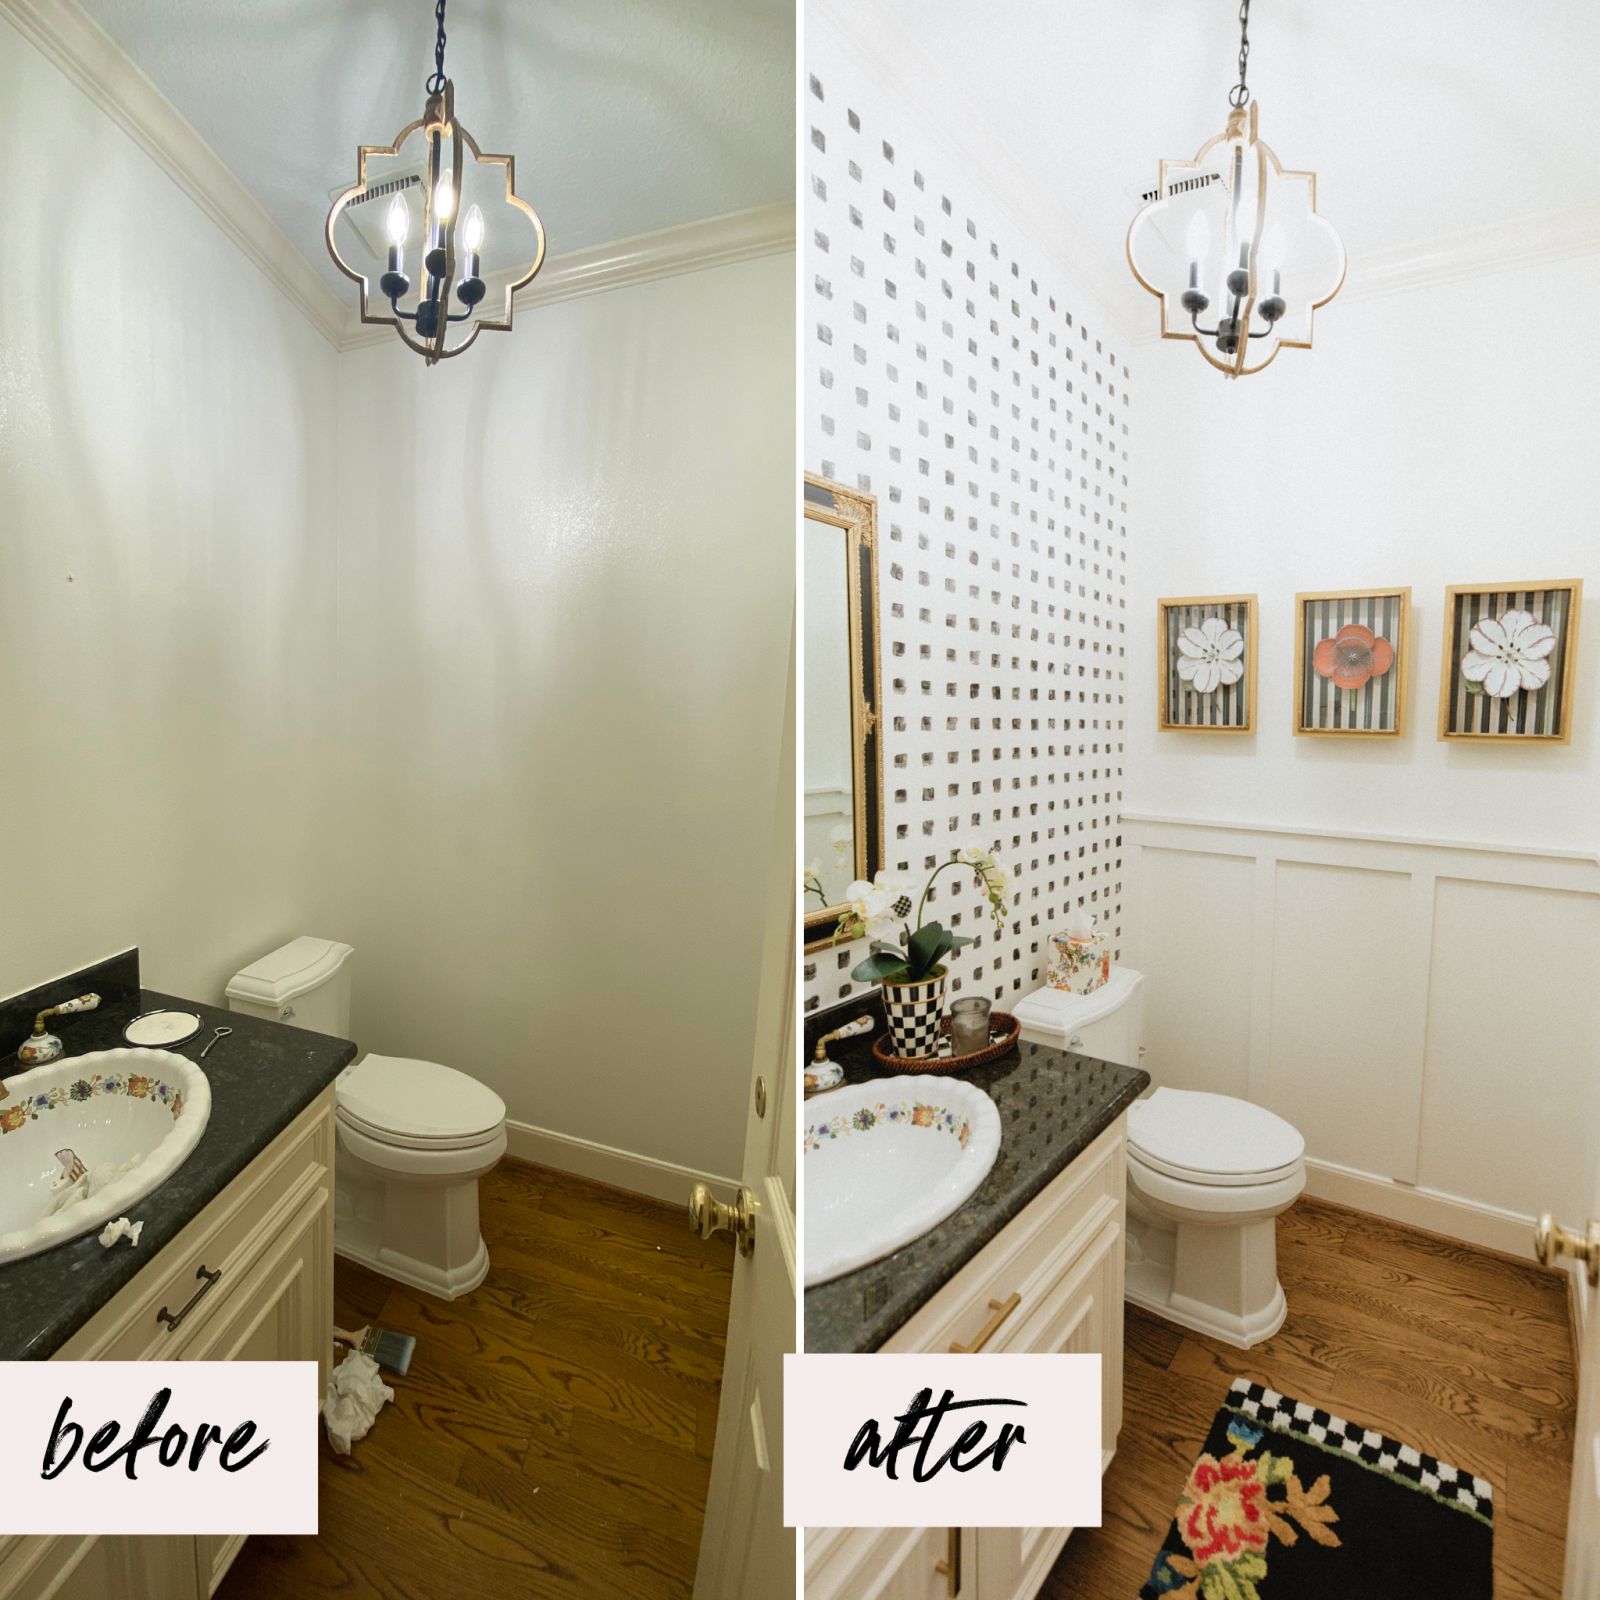 Looking for small Powder Bathroom Ideas? Elly Brown shares her Powder Bathroom Decor and how they gave the space a new land fresh look!